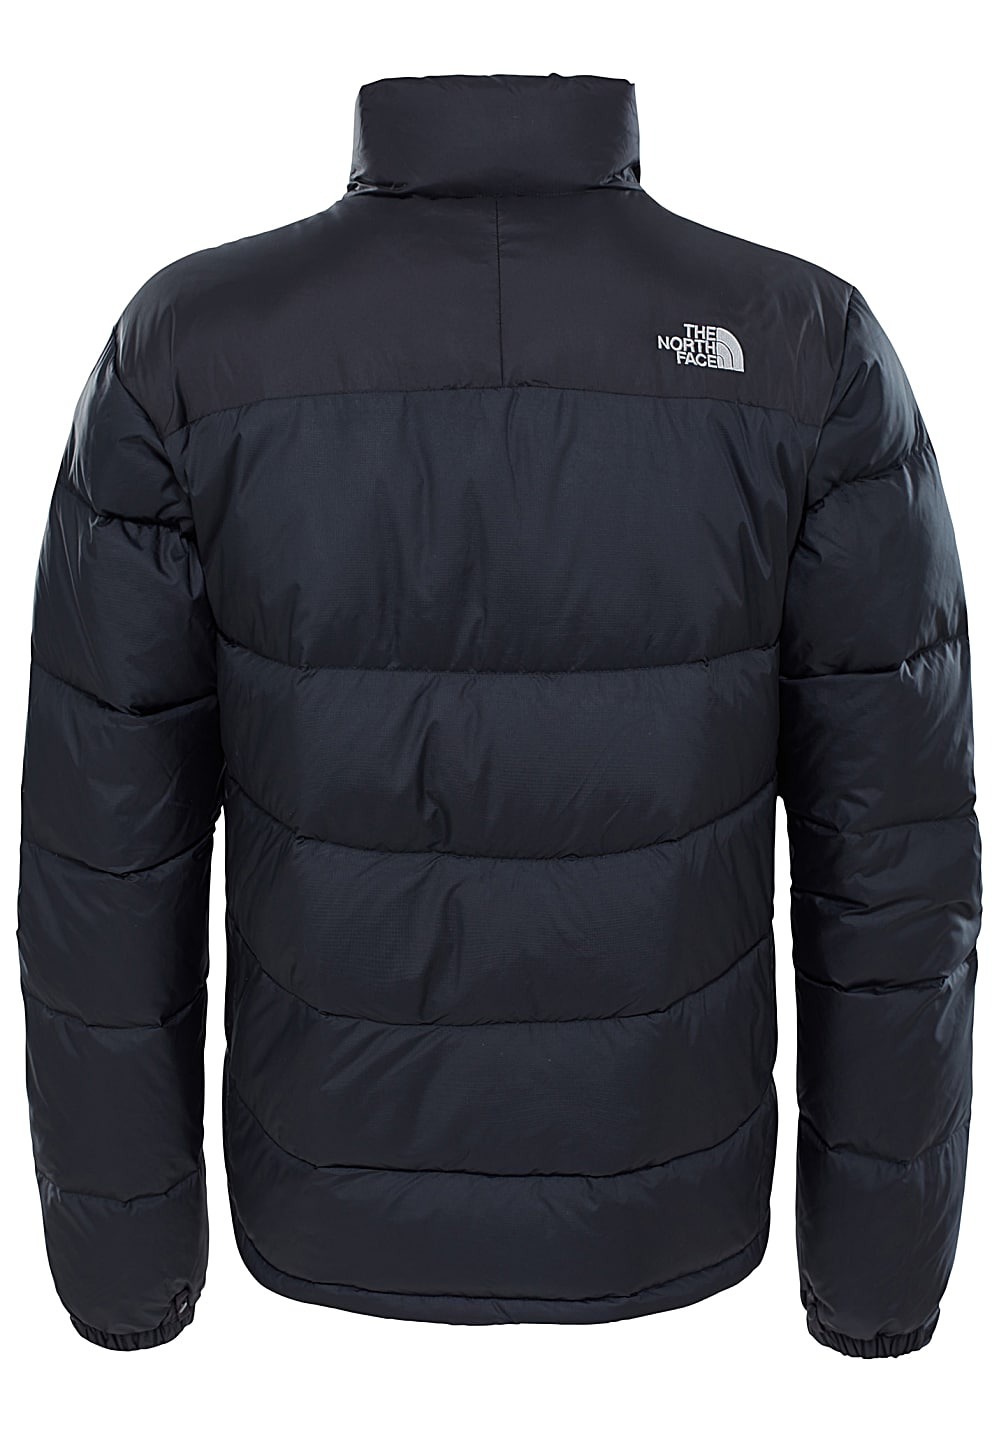 THE NORTH FACE Nuptse 2 - Funktionsjacke für Herren - Schwarz ... 564431abe